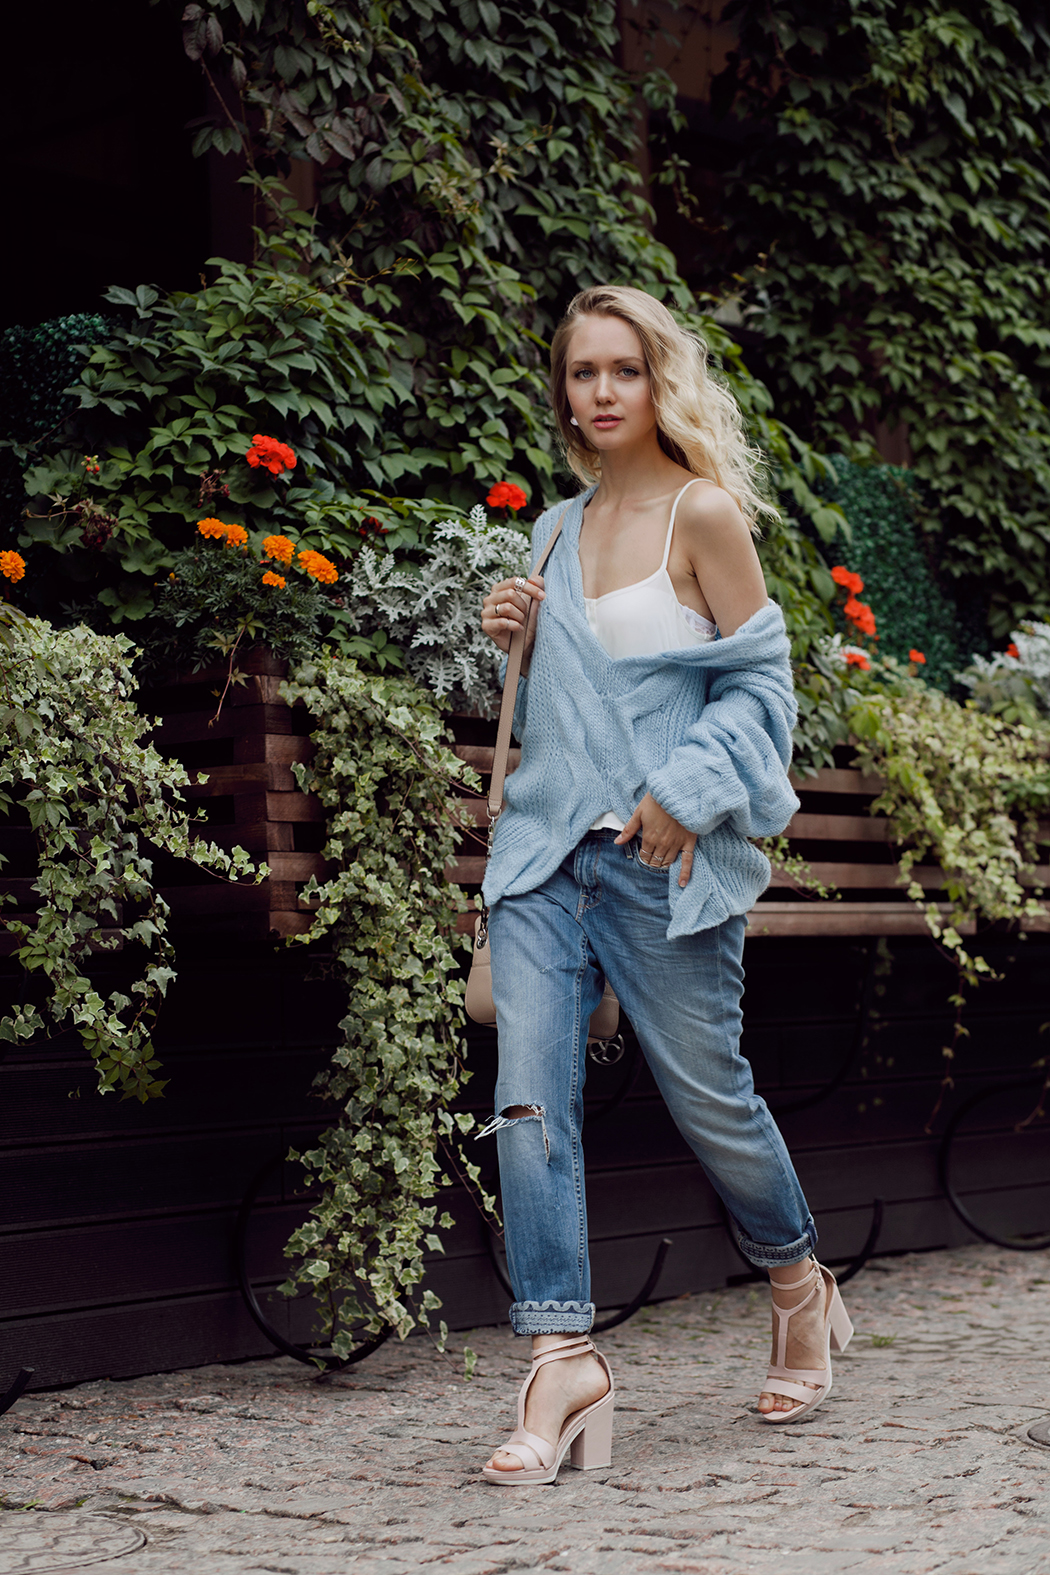 inspiration, streetstyle, summer outfit, summer streetstyle, autumn outfit, knitted sweater, oversize sweater, annamidday, top fashion blogger, top russian fashion blogger, фэшн блогер, русский блогер, известный блогер, топовый блогер, russian bloger, top russian blogger, streetfashion, russian fashion blogger, blogger, fashion, style, fashionista, модный блогер, российский блогер, ТОП блогер, ootd, lookoftheday, look, популярный блогер, российский модный блогер, annamidday, top russian blogger, summer look,  russian girl, с чем носить бойфренд джинсы,  girly, calvin klein, blue sweater, boyfriend jeans, lee, choies, how to wear sweater, вязаный свитер, с чем носить свитер, красивая девушка, русская девушка, fashion week